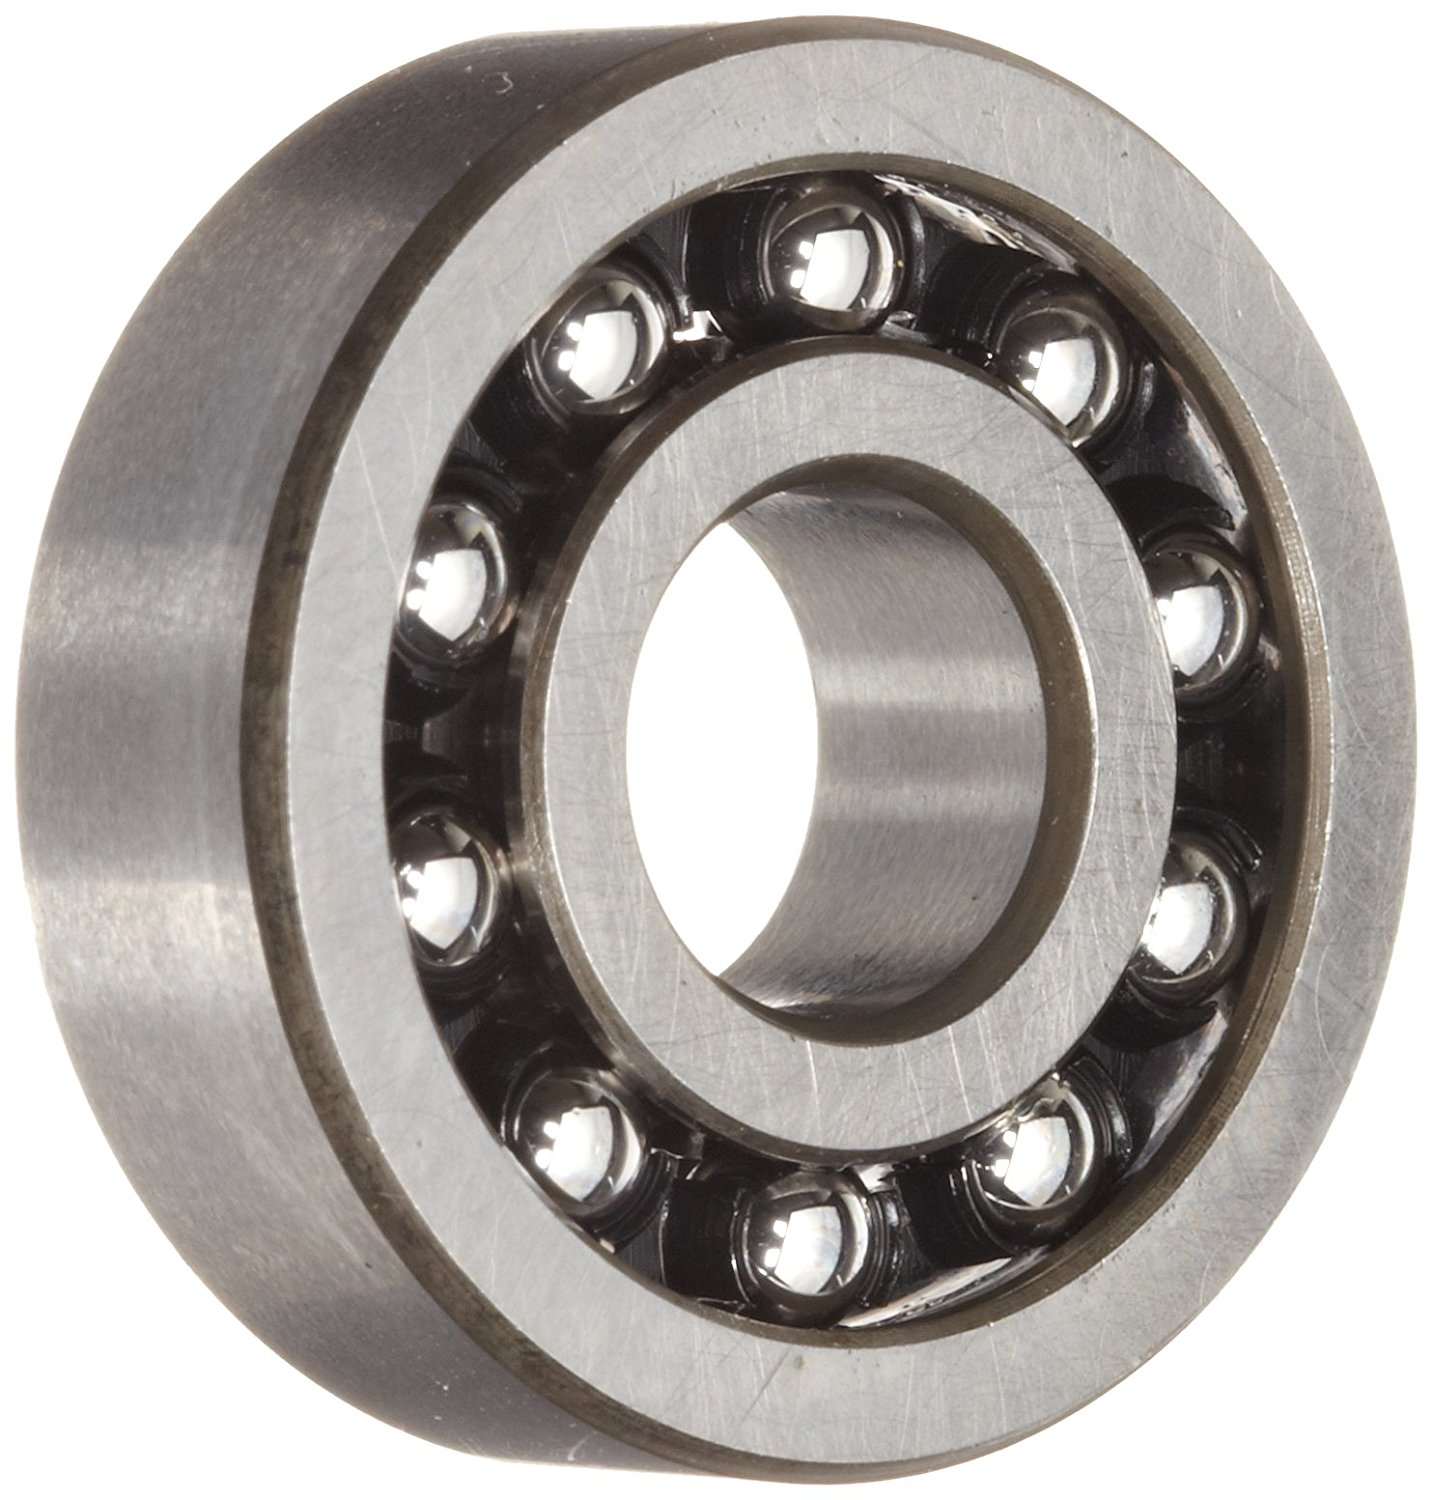 FAG 1206TV Self-Aligning Ball Bearing (Inside Dia - 30mm, Outside Dia - 62mm)